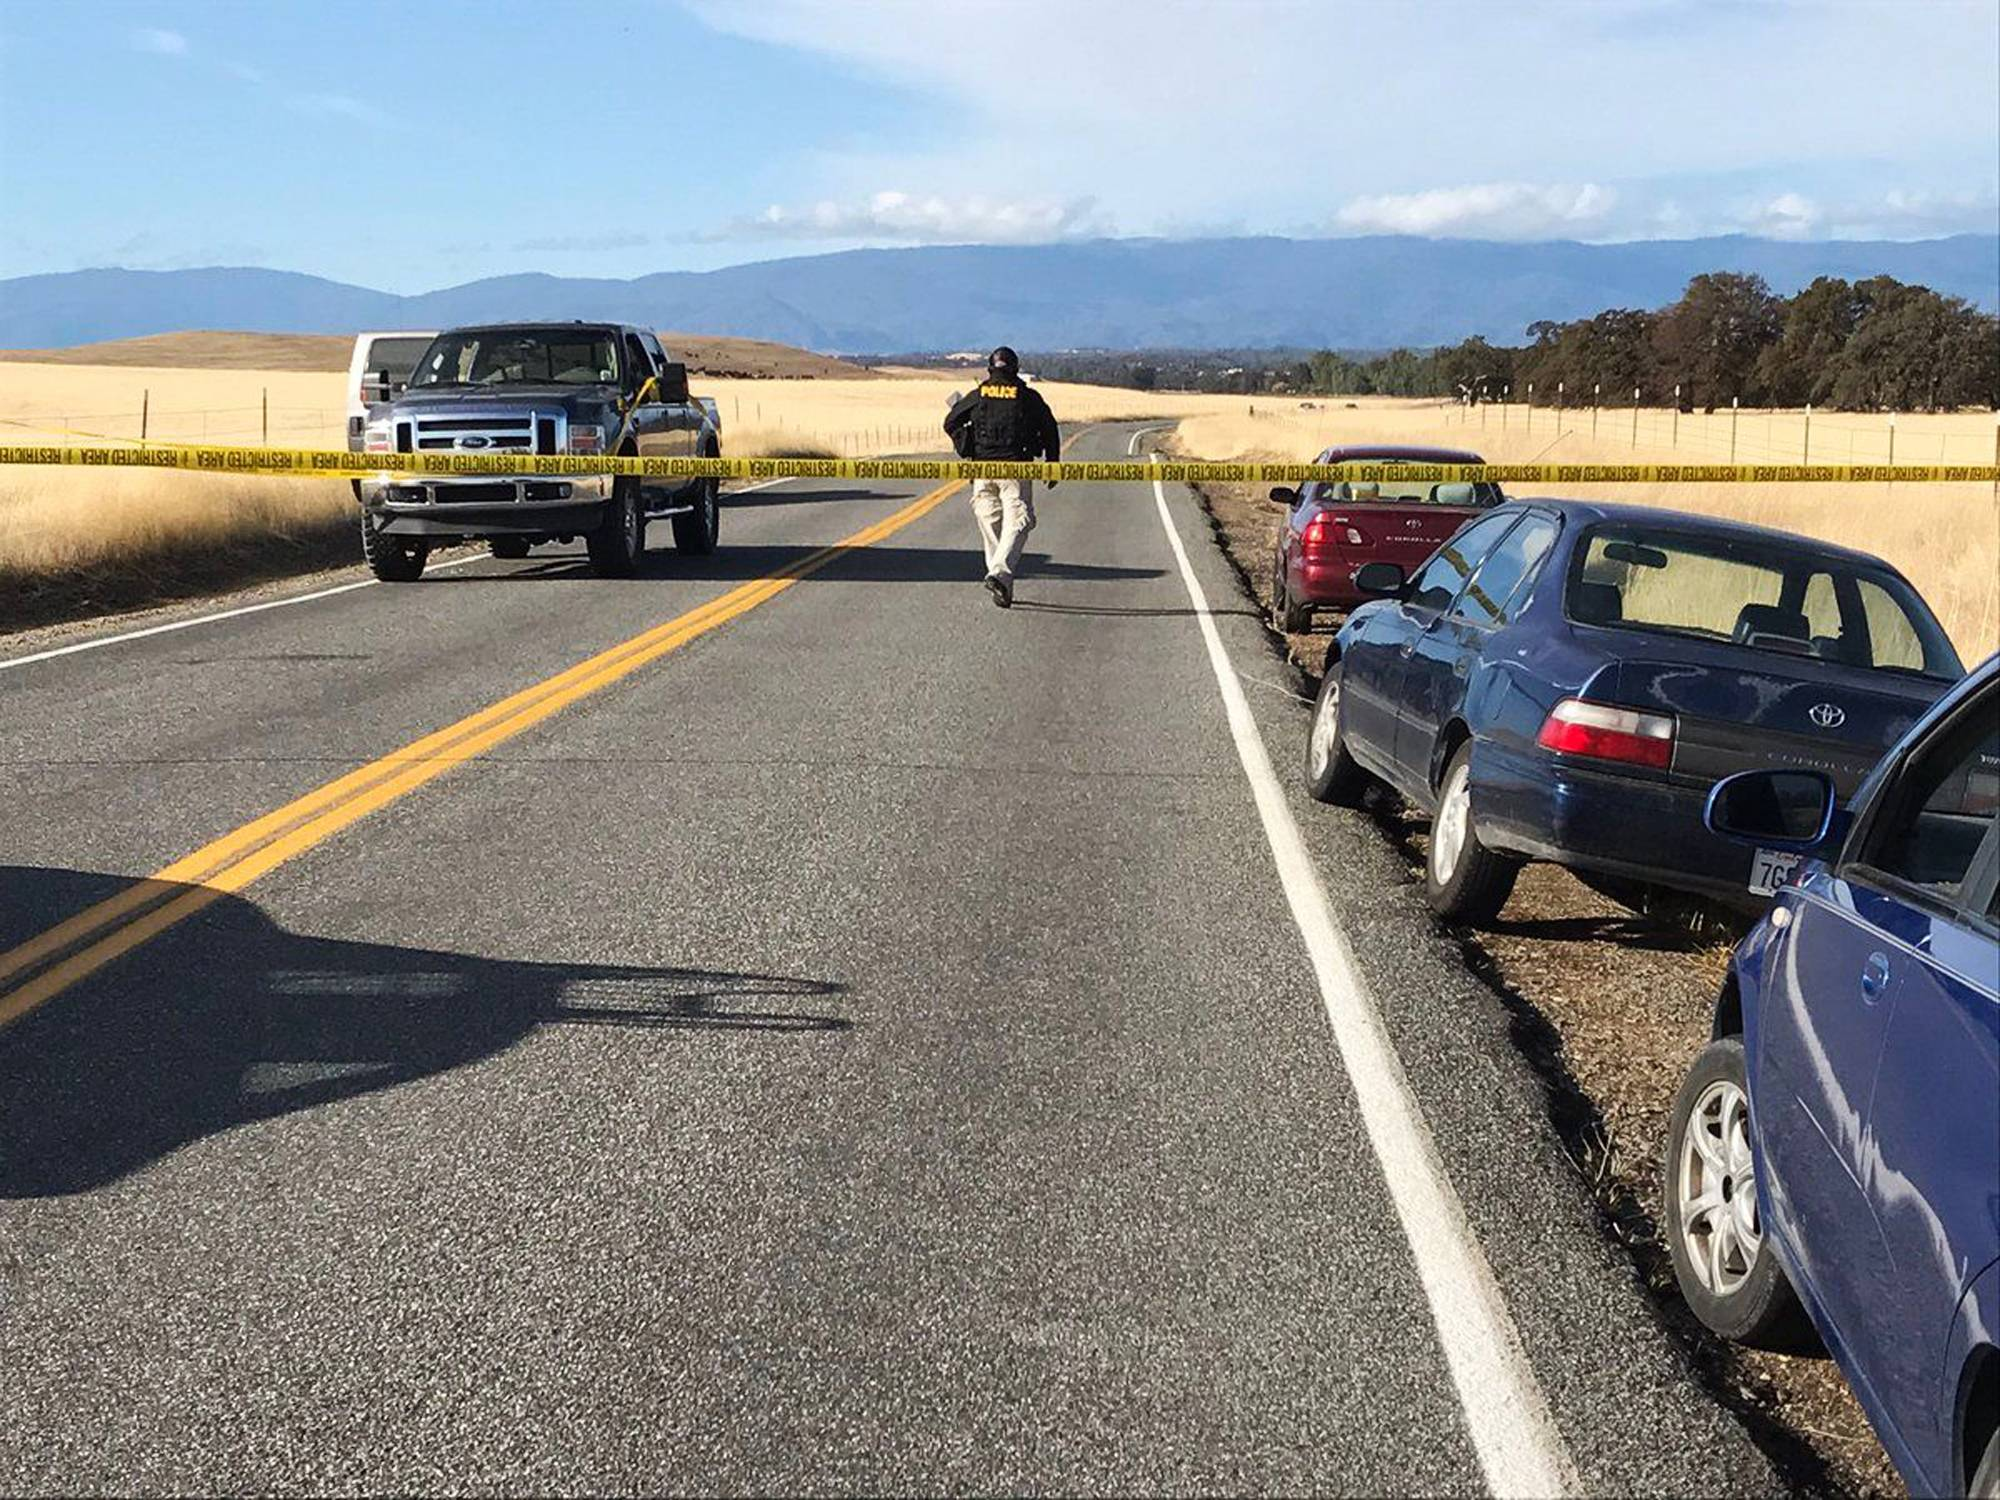 Crime tape blocks off Rancho Tehama Road leading into the Rancho Tehama subdivision south of Red Bluff, California, following a fatal shooting on Tuesday.